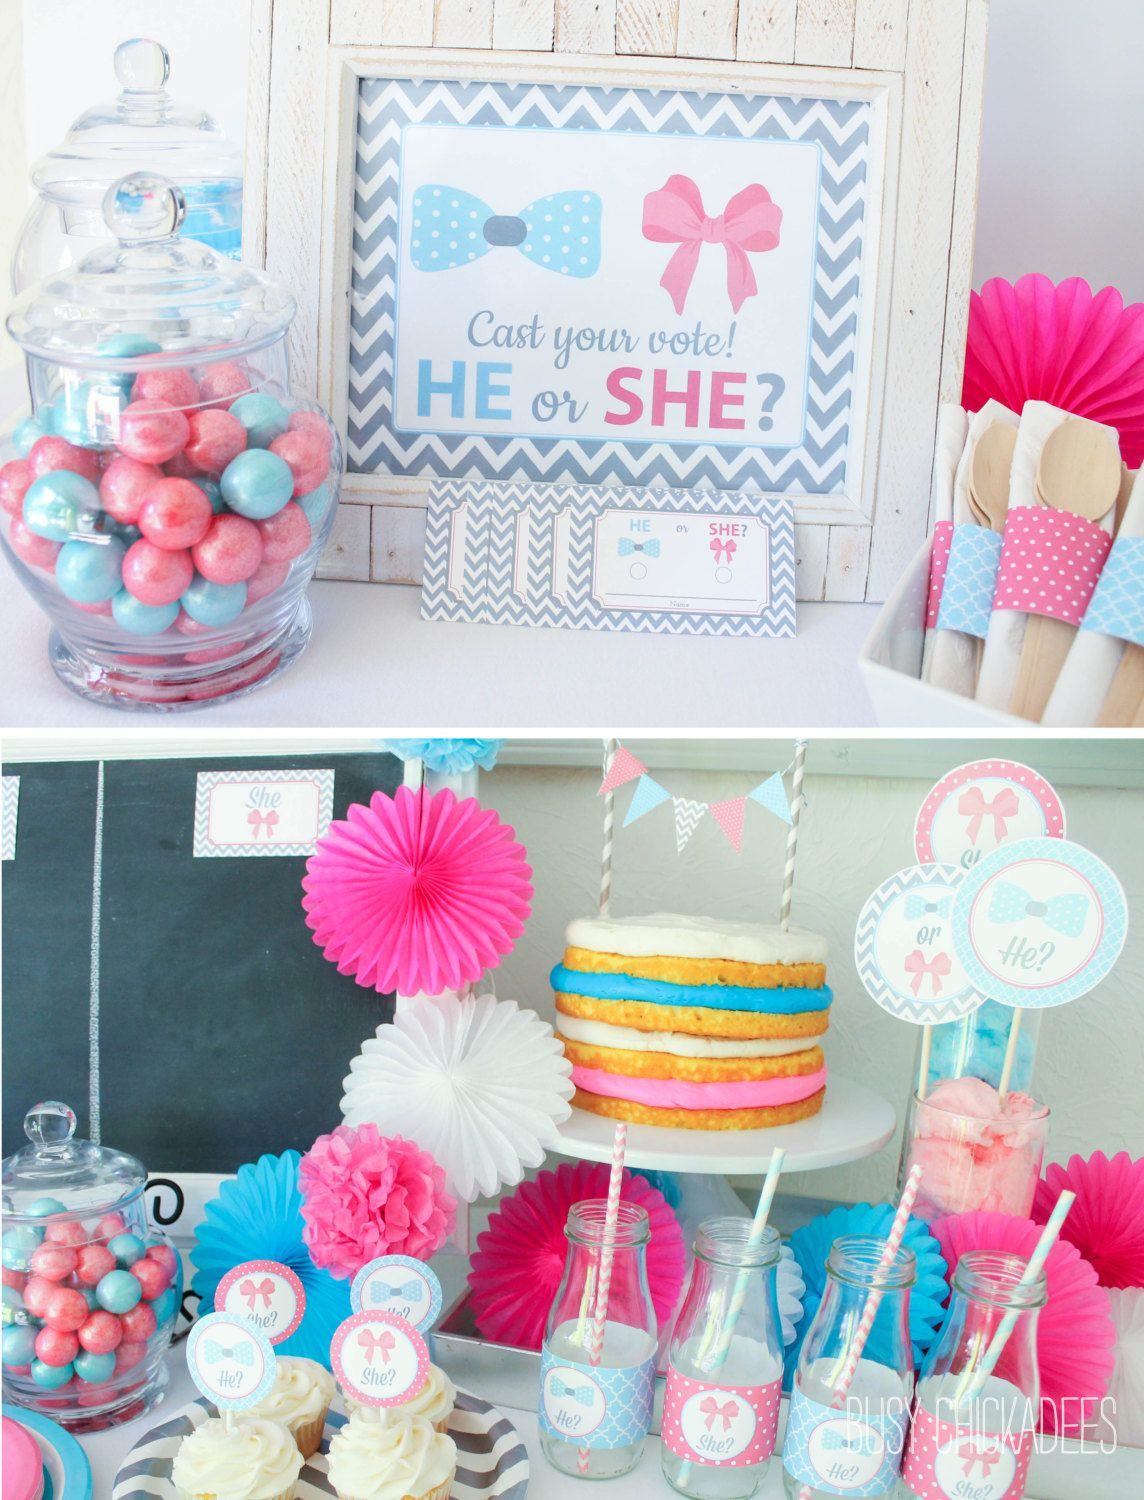 10 Baby Gender Reveal Party Ideas Baby Shower Partyideapros Com Gender Reveal Decorations Gender Reveal Party Decorations Gender Reveal Party